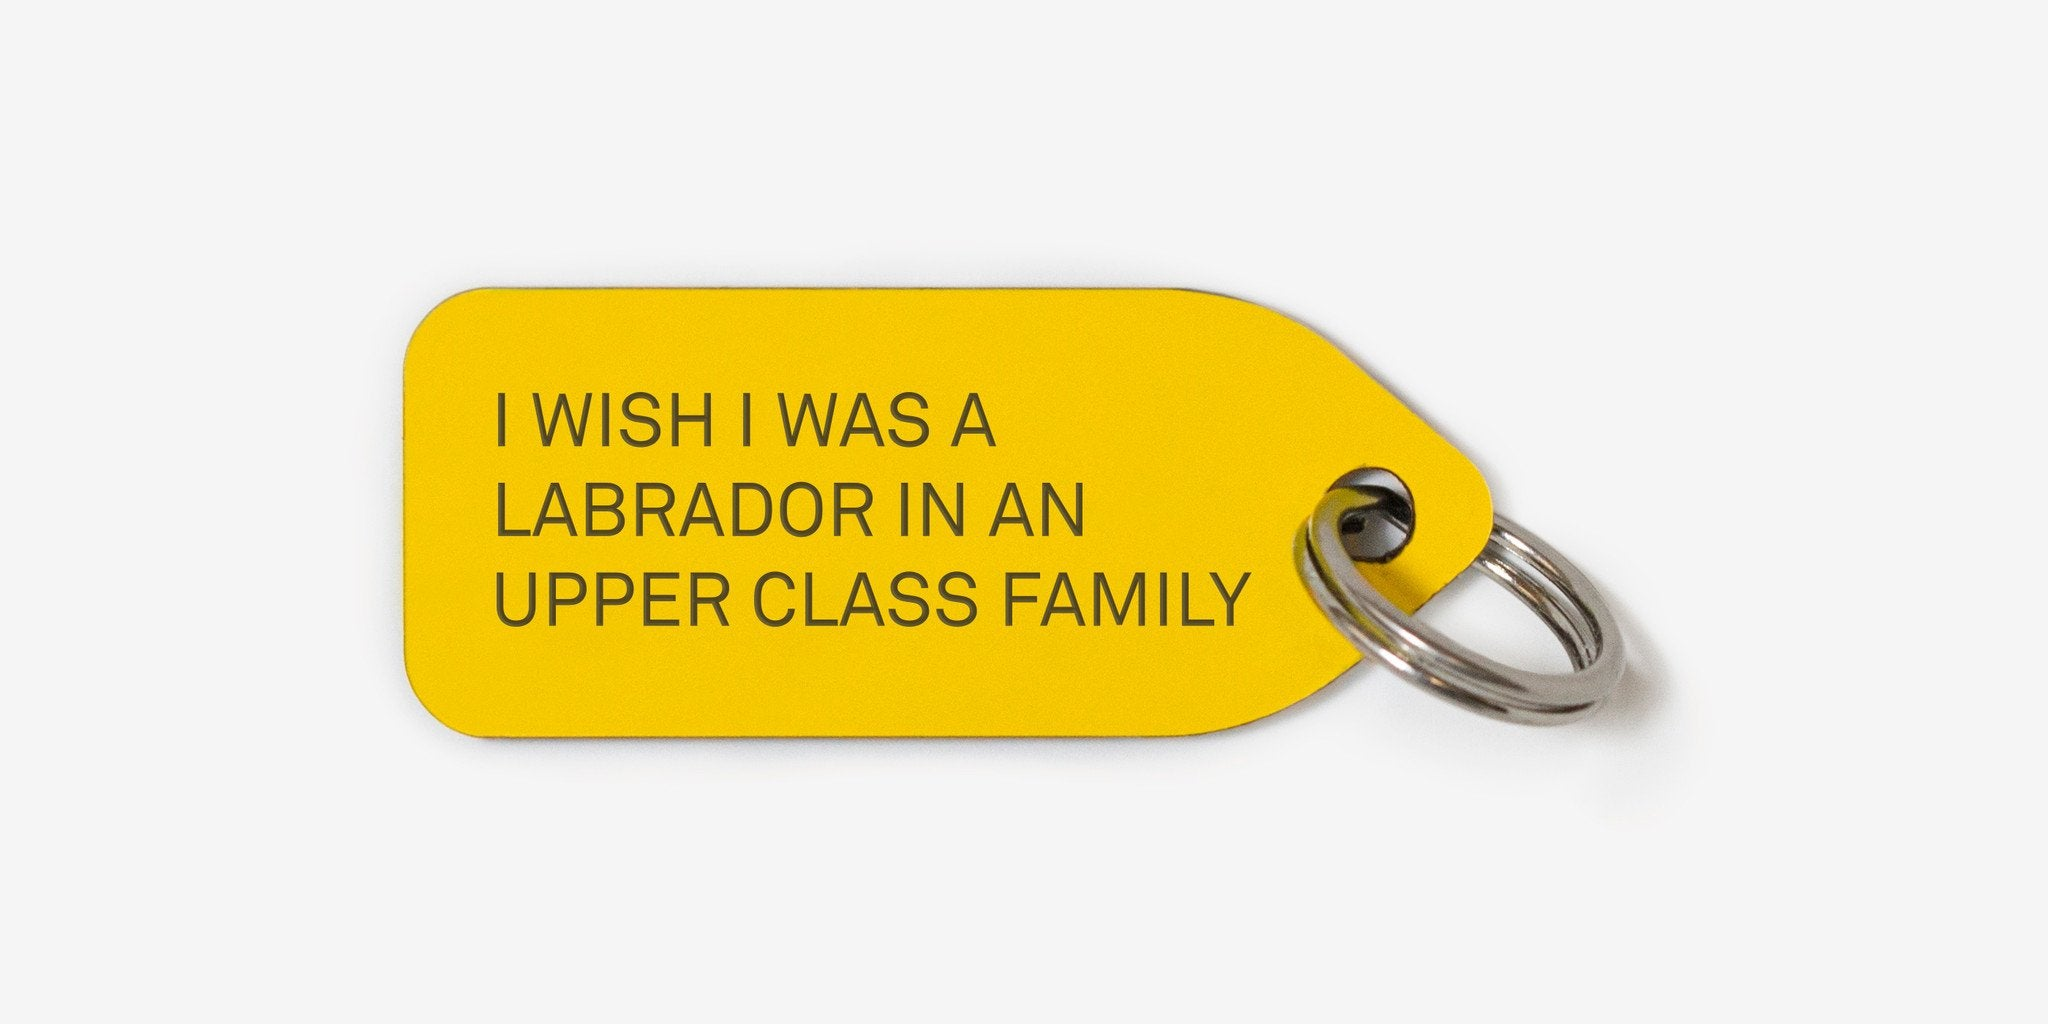 I wish I was a Labrador in an upper class family | dog tag |